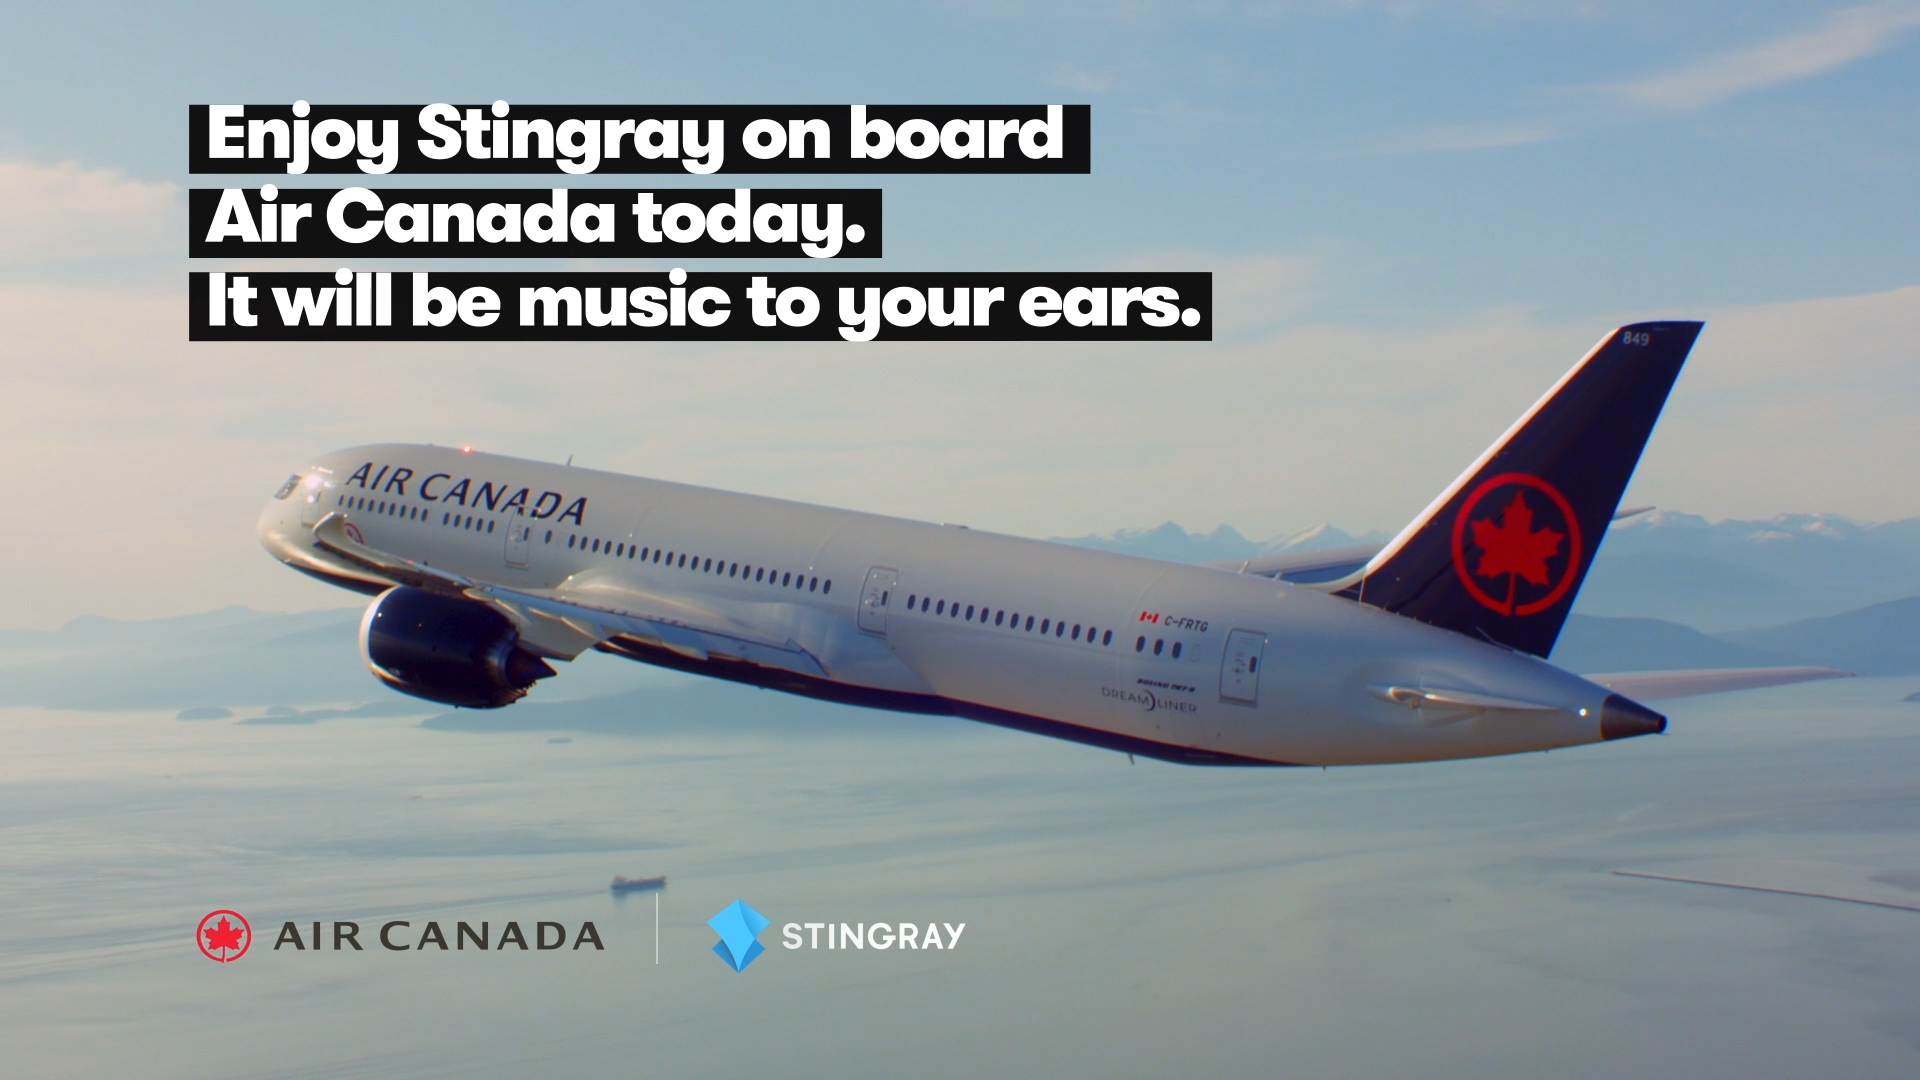 Stingray partners with Air Canada on its Award-Winning In